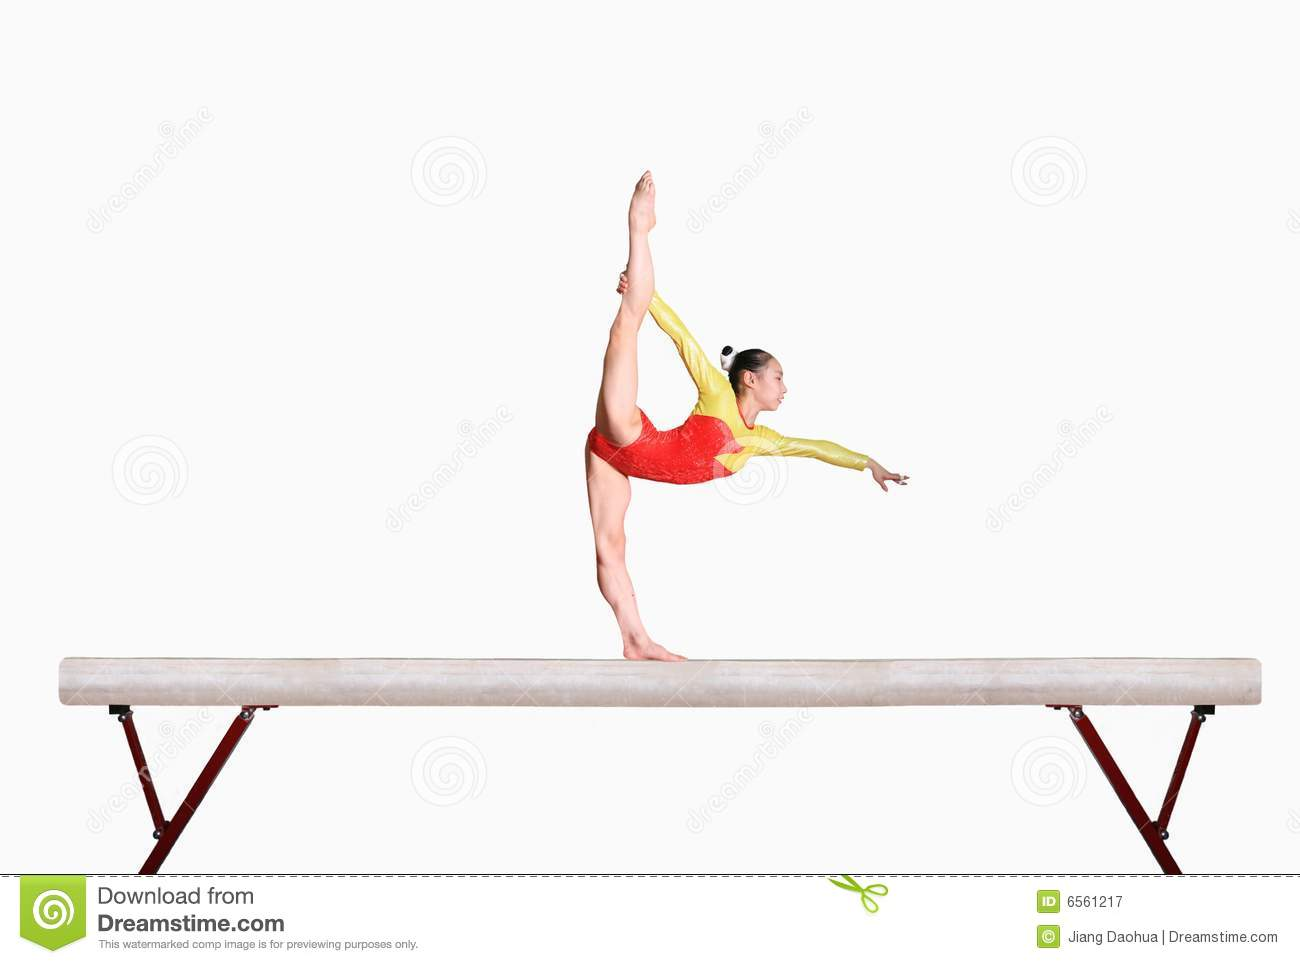 Chinese girl in gymnastics poses.